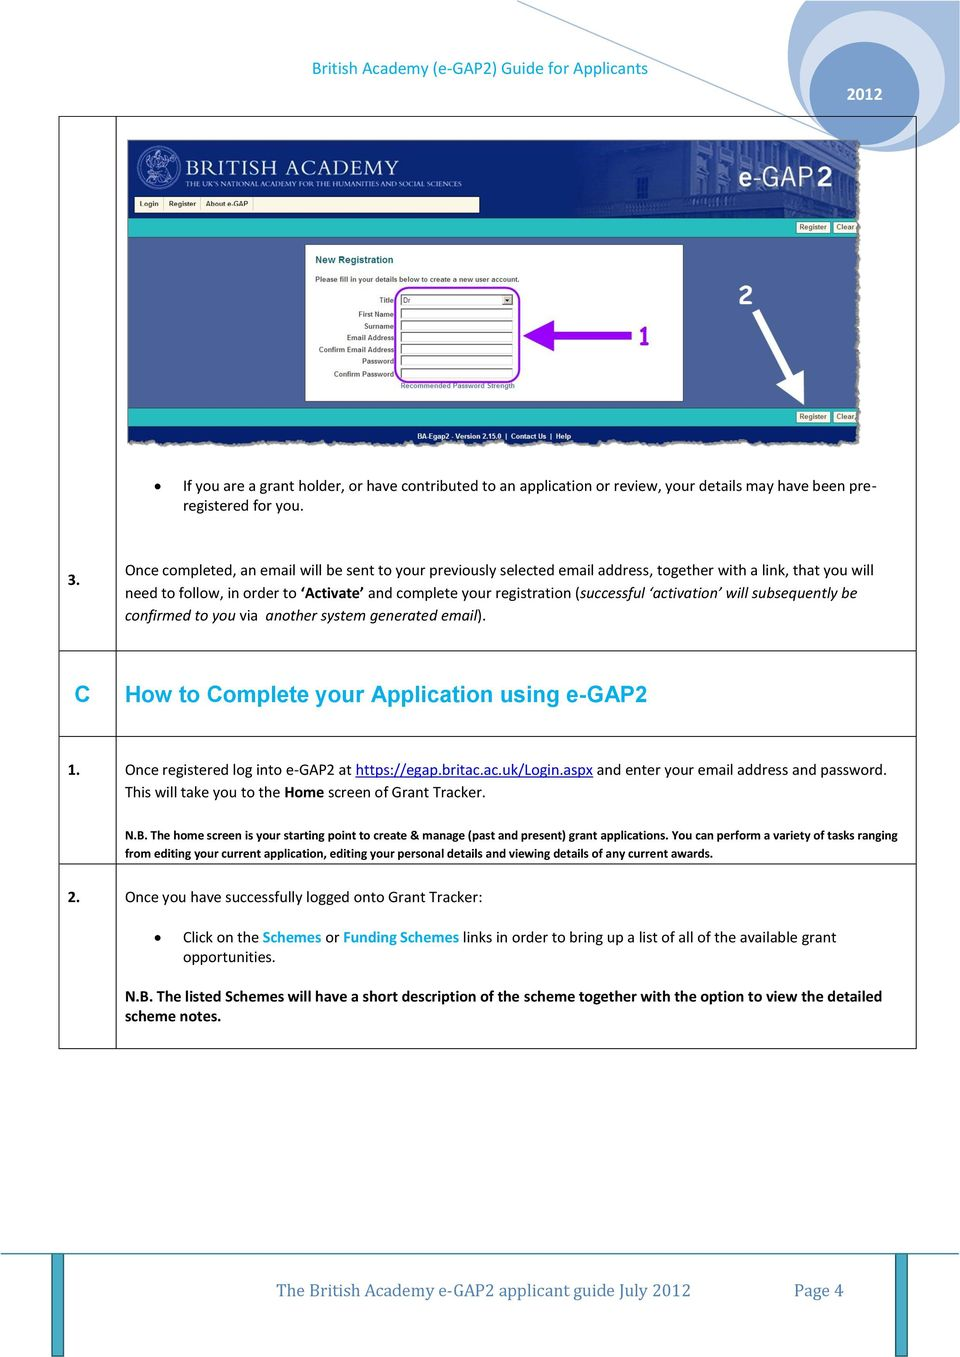 activation will subsequently be confirmed to you via another system generated email). C How to Complete your Application using e-gap2 1. Once registered log into e-gap2 at https://egap.britac.ac.uk/login.